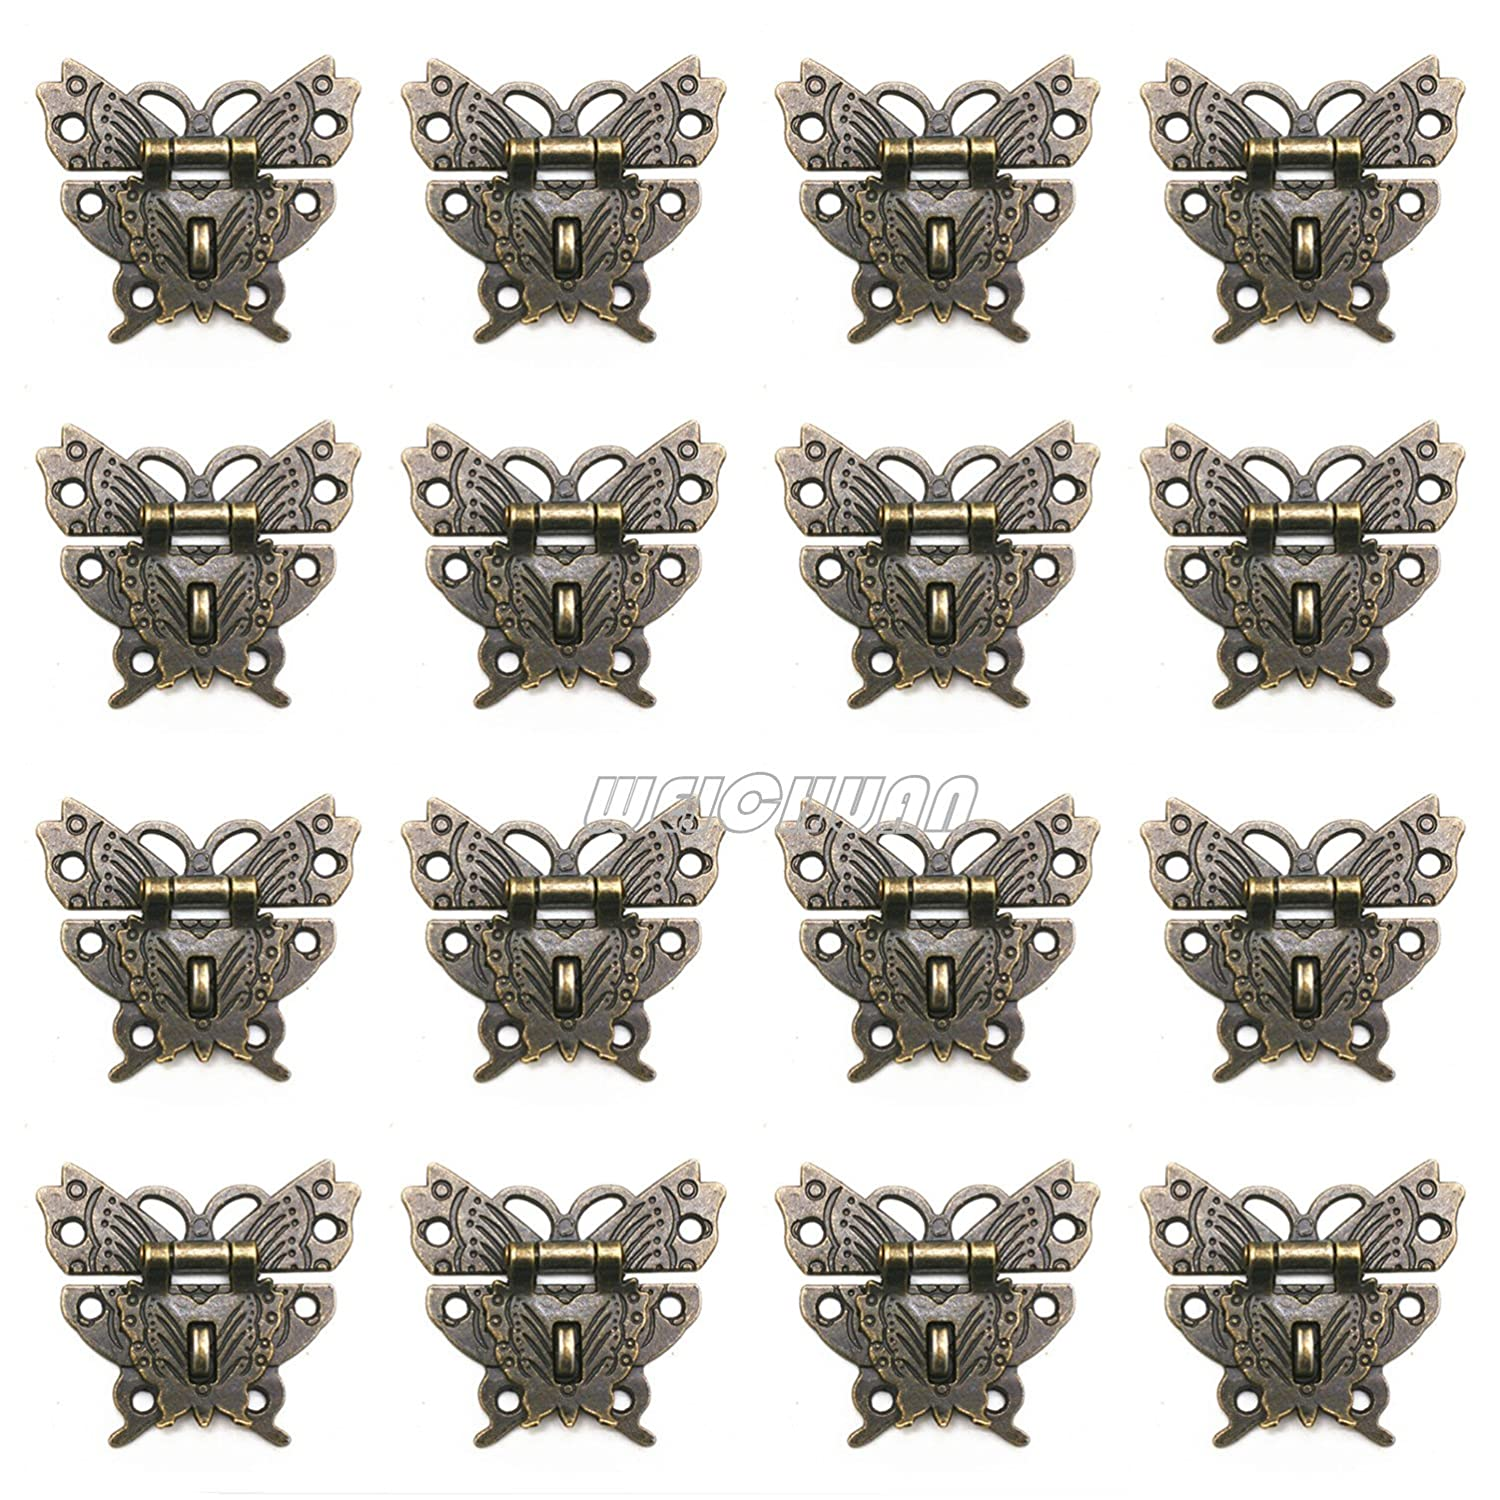 WEICHUAN 16 Sets Antique Bronze Decorative Butterfly Clasp Hasp Latches For Crafting Wooden Case Chest Toolbox